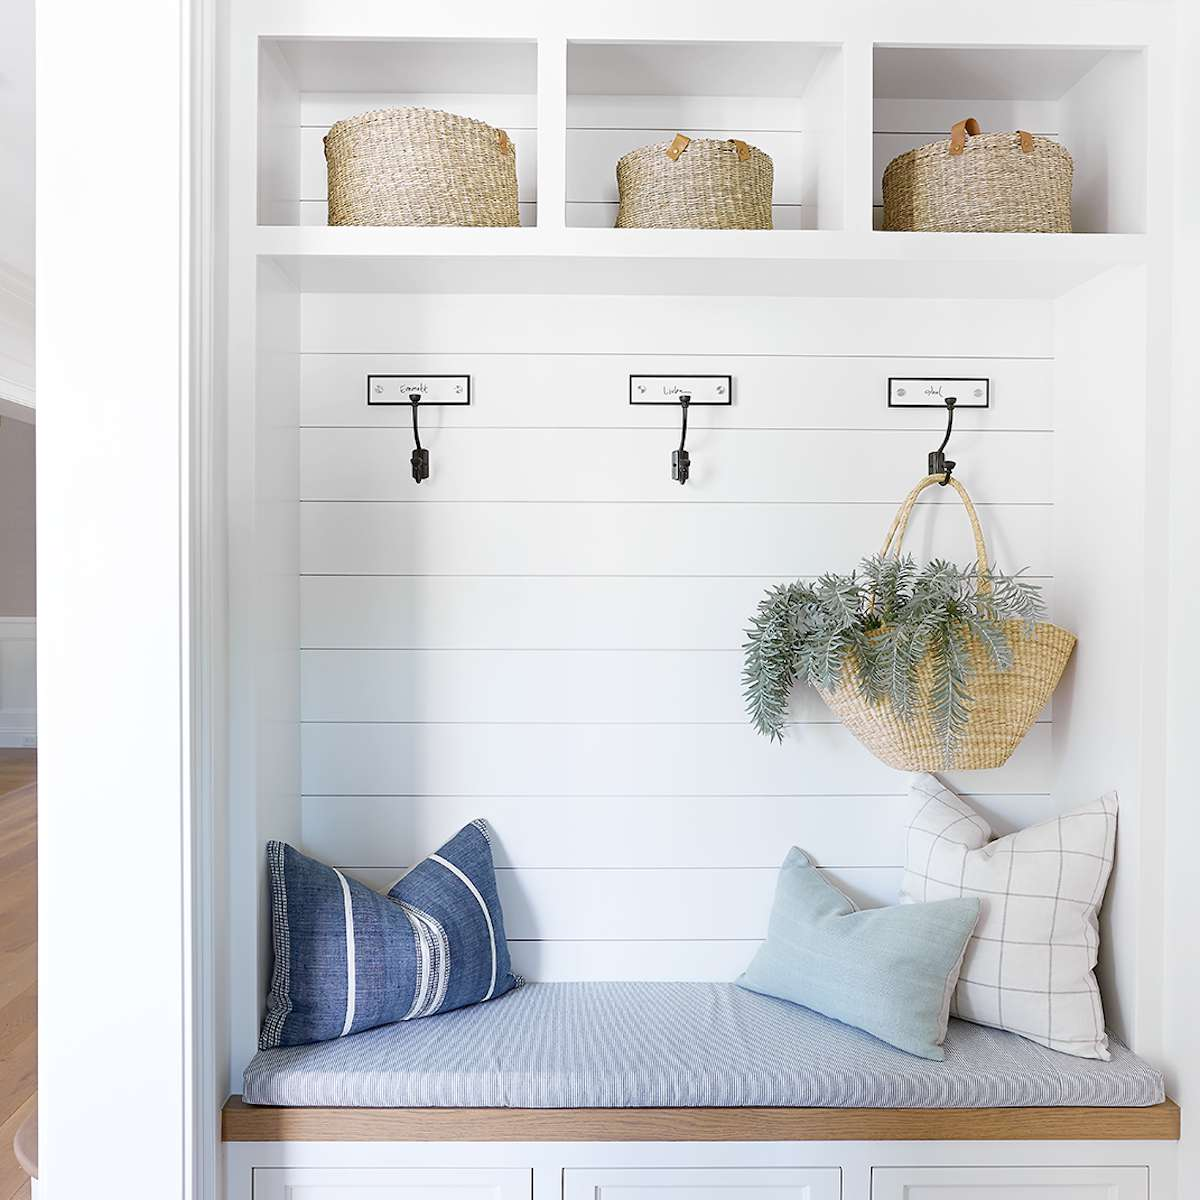 An all-white mudroom lined with hangers, drawers, and cubbies